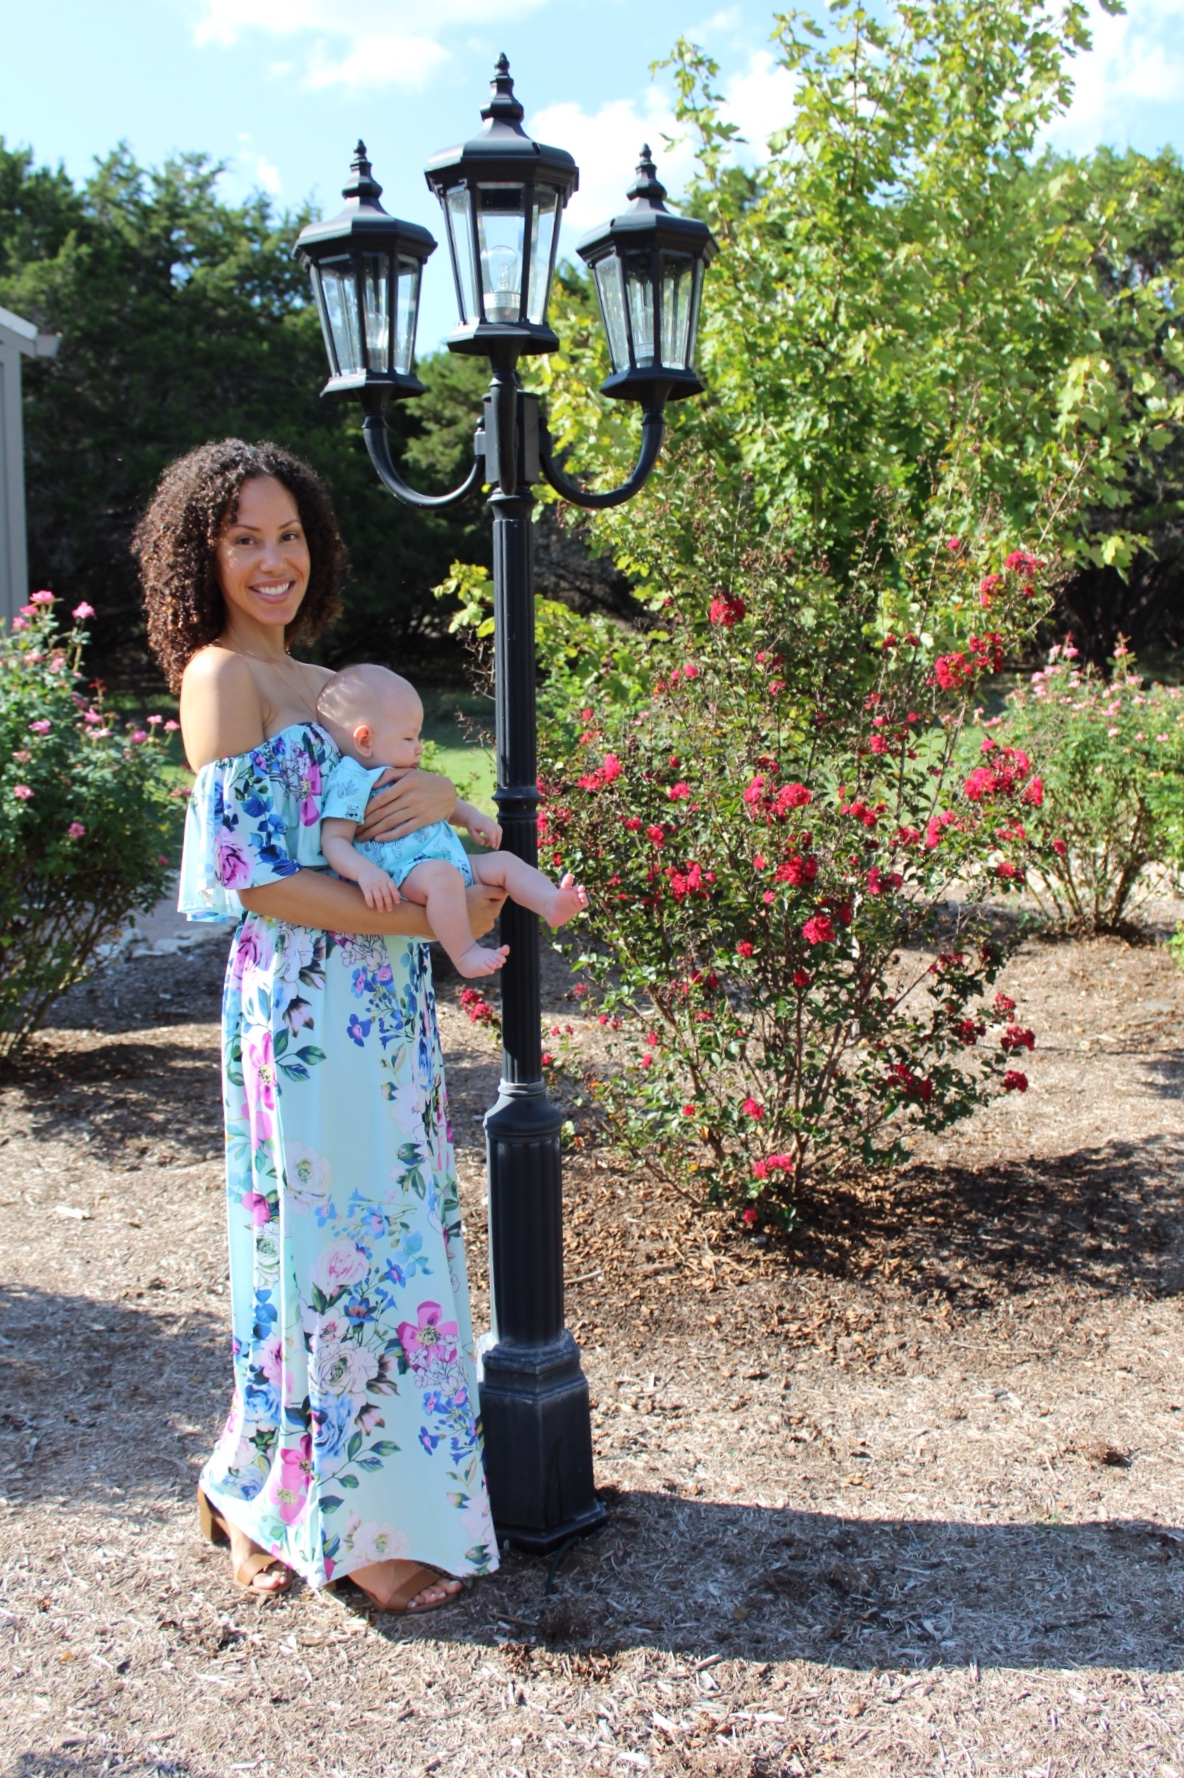 darkhaired woman holding baby in blue flowered dress next to a rose bush